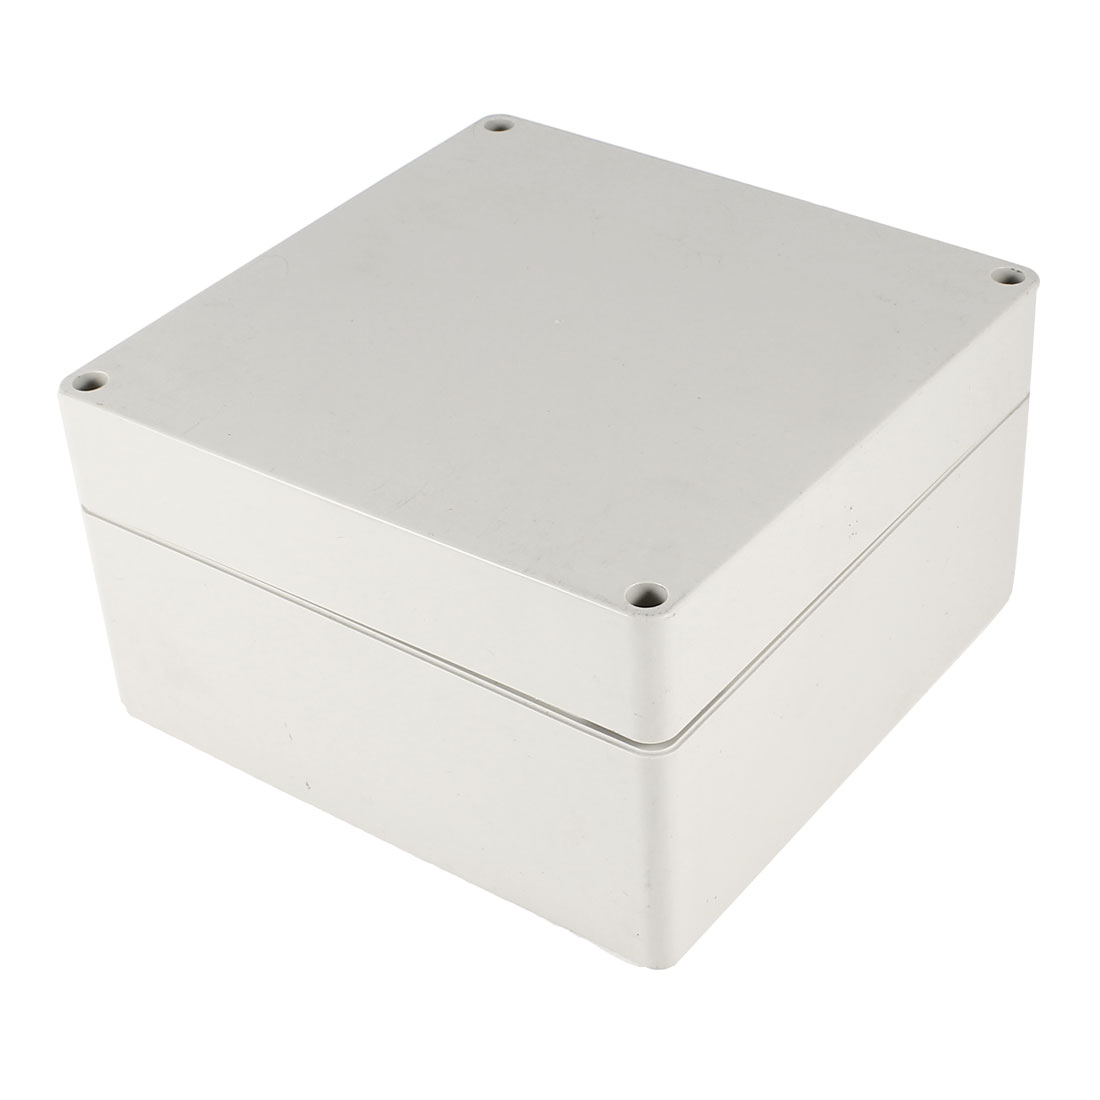 160mmx160mmx90mm-Rectangle-Shaped-Waterproof-Plastic-Switch-Junction-Box